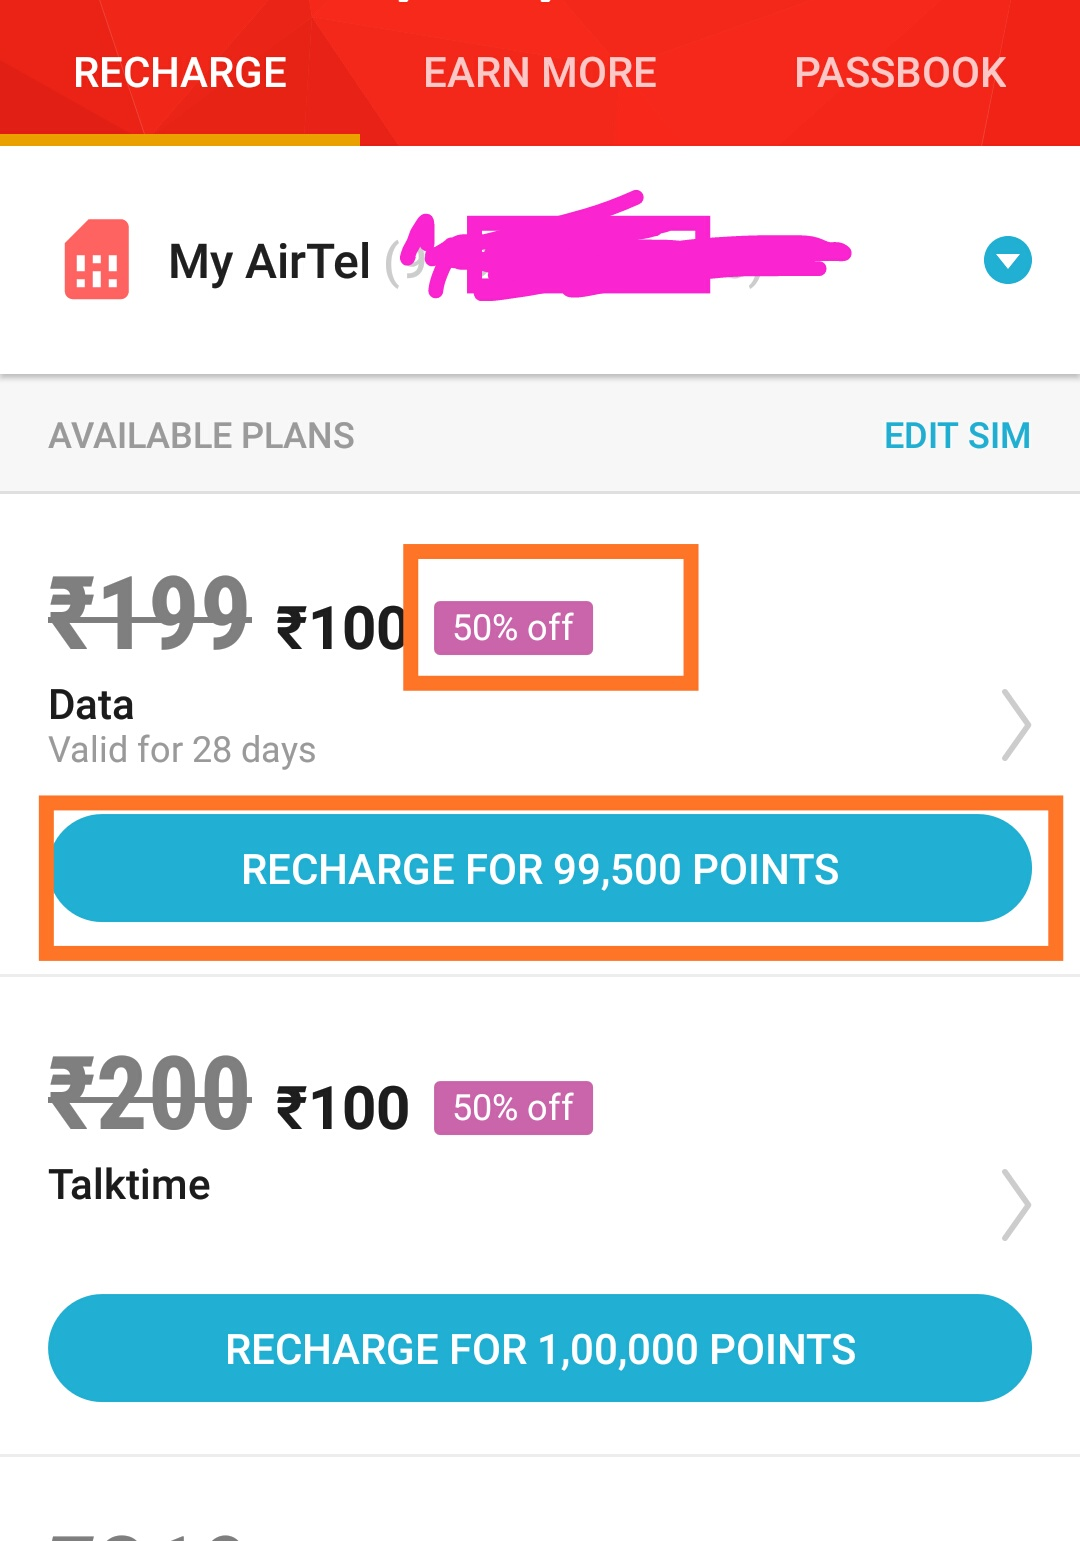 Mcent browser Now offering 50% Discount on Recharge Plans | DesiDime